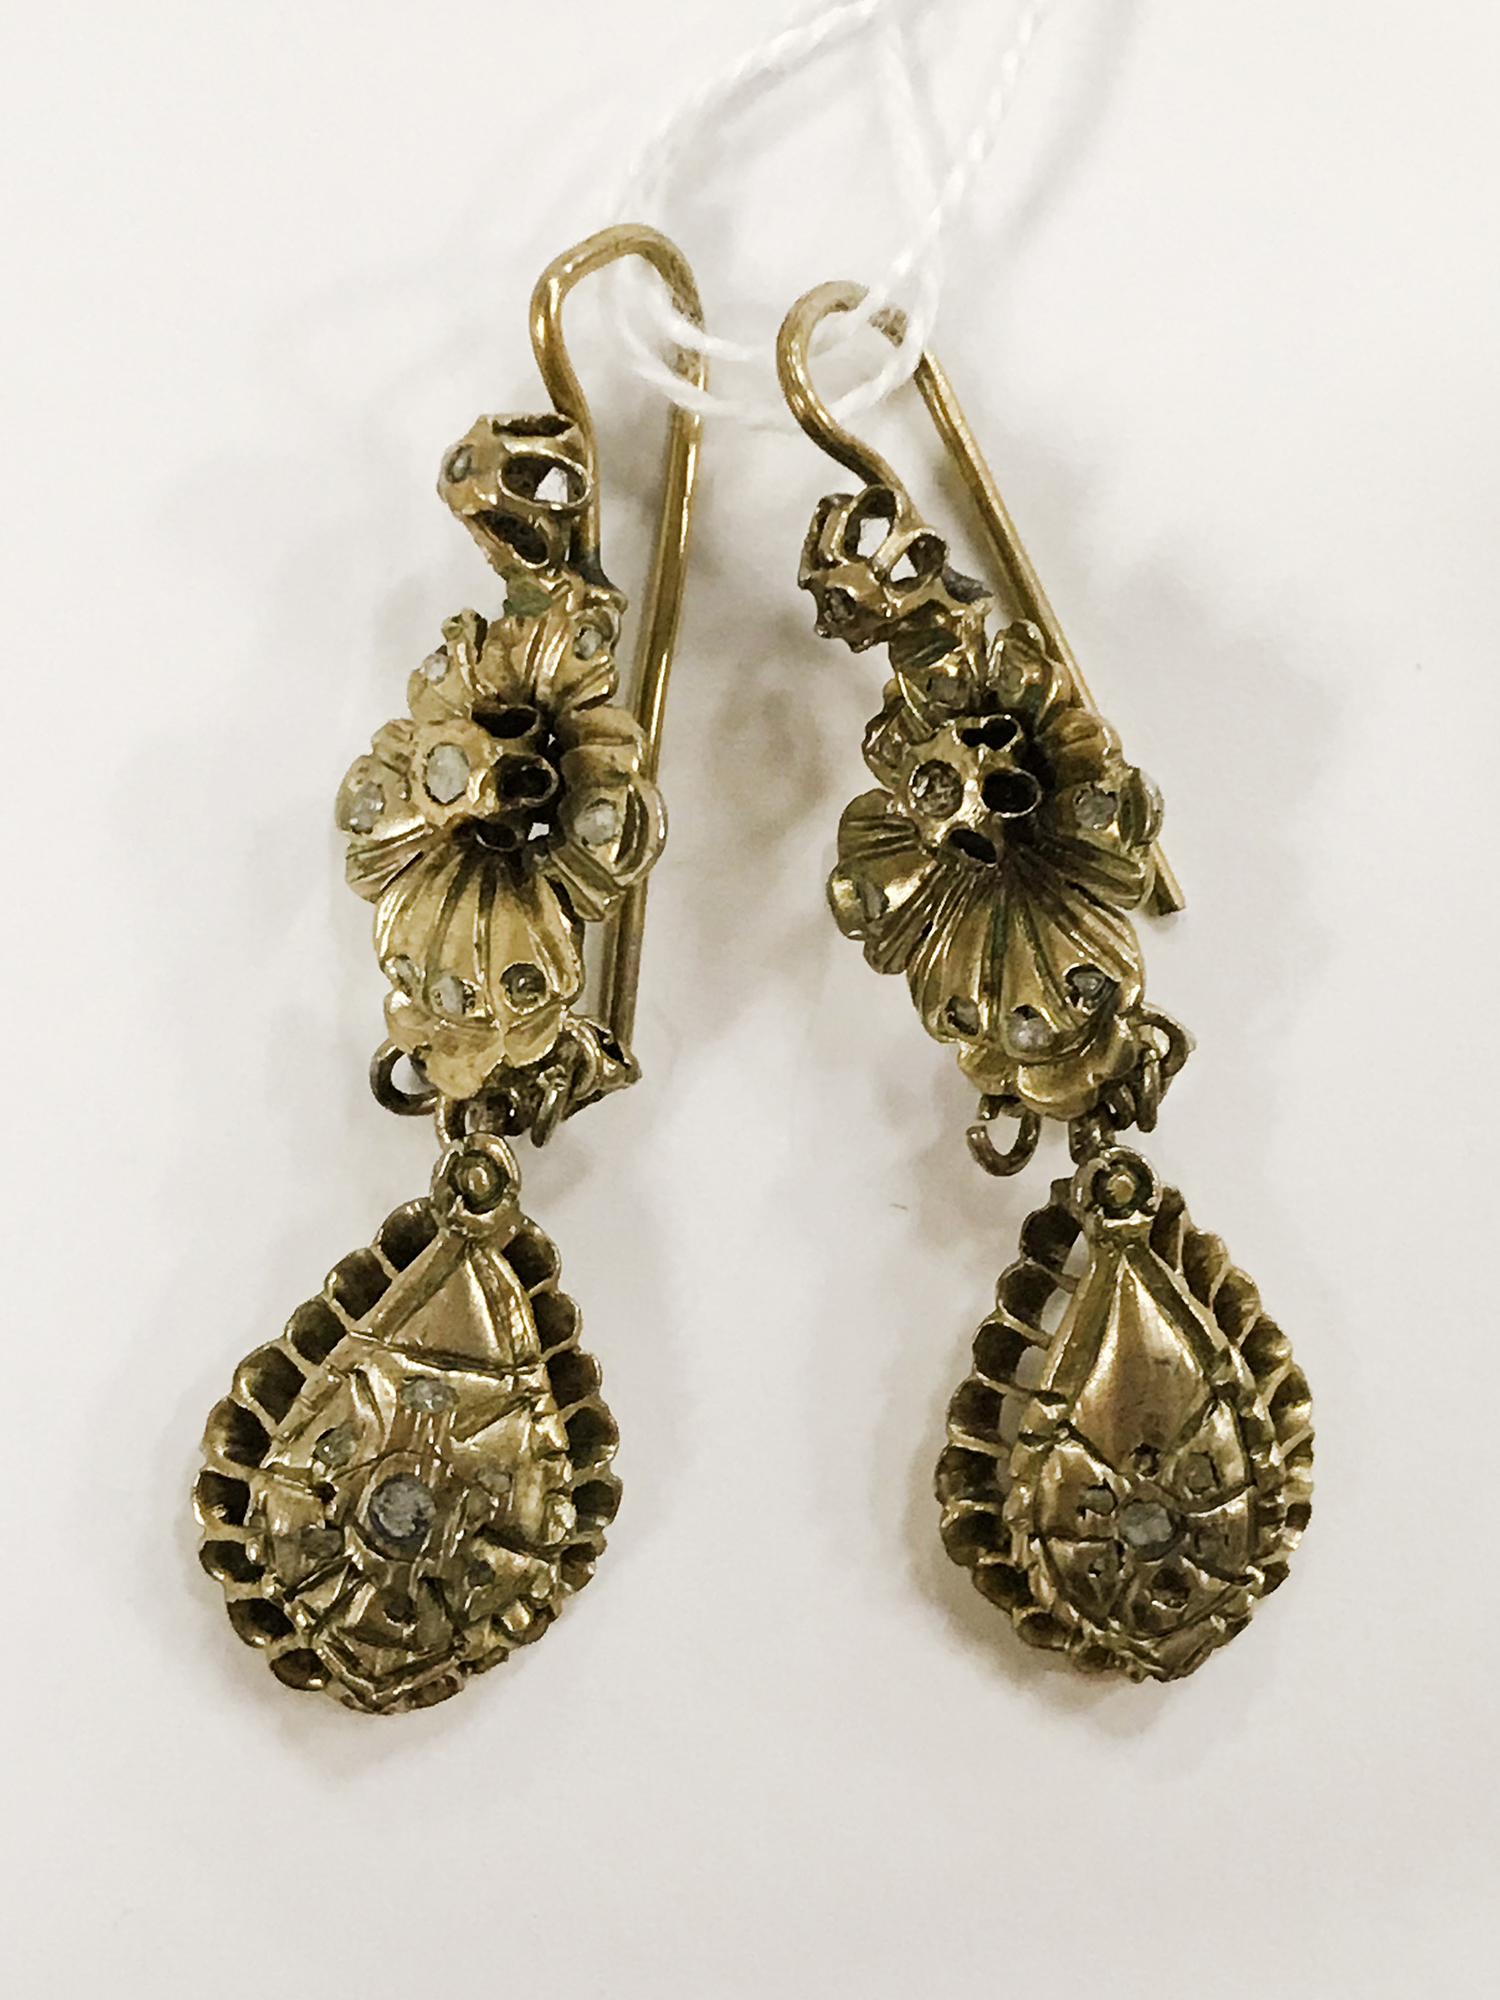 ANTIQUE EARRINGS WITH DIAMONDS